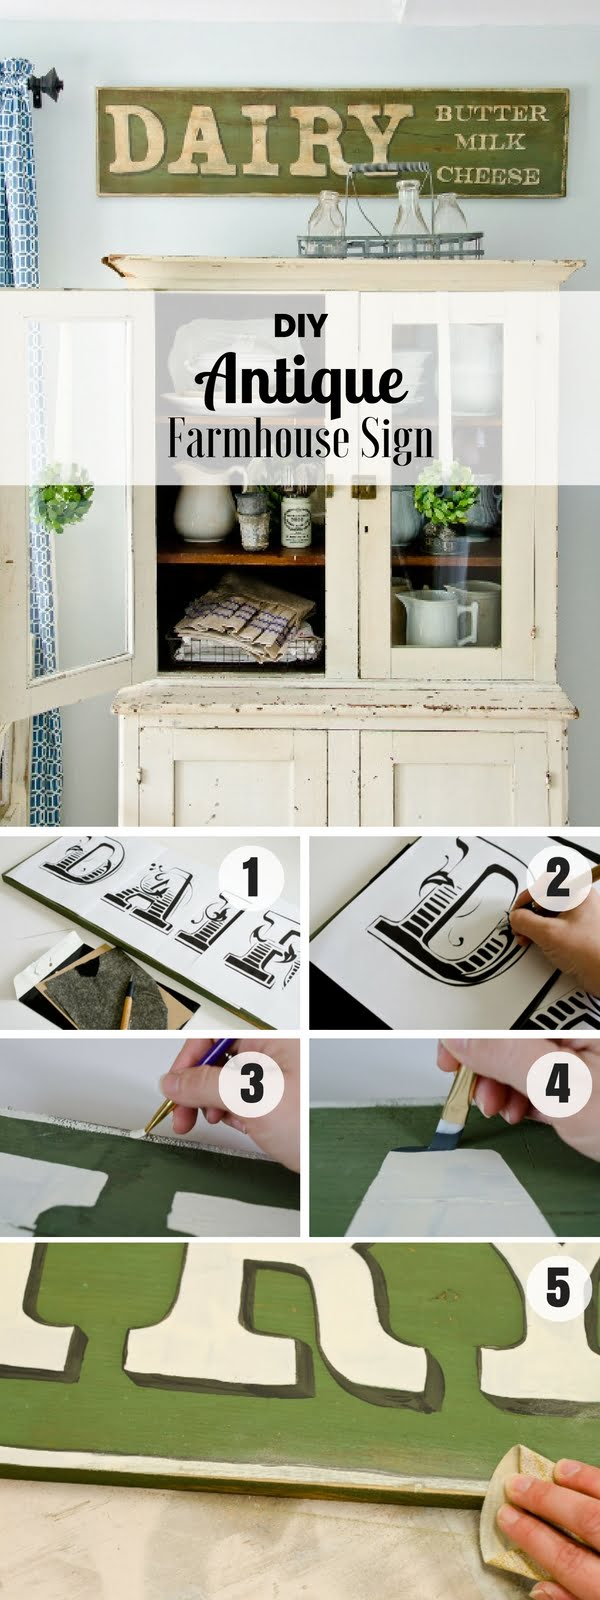 Check out how to make an easy DIY Antique Farmhouse Sign for kitchen decor